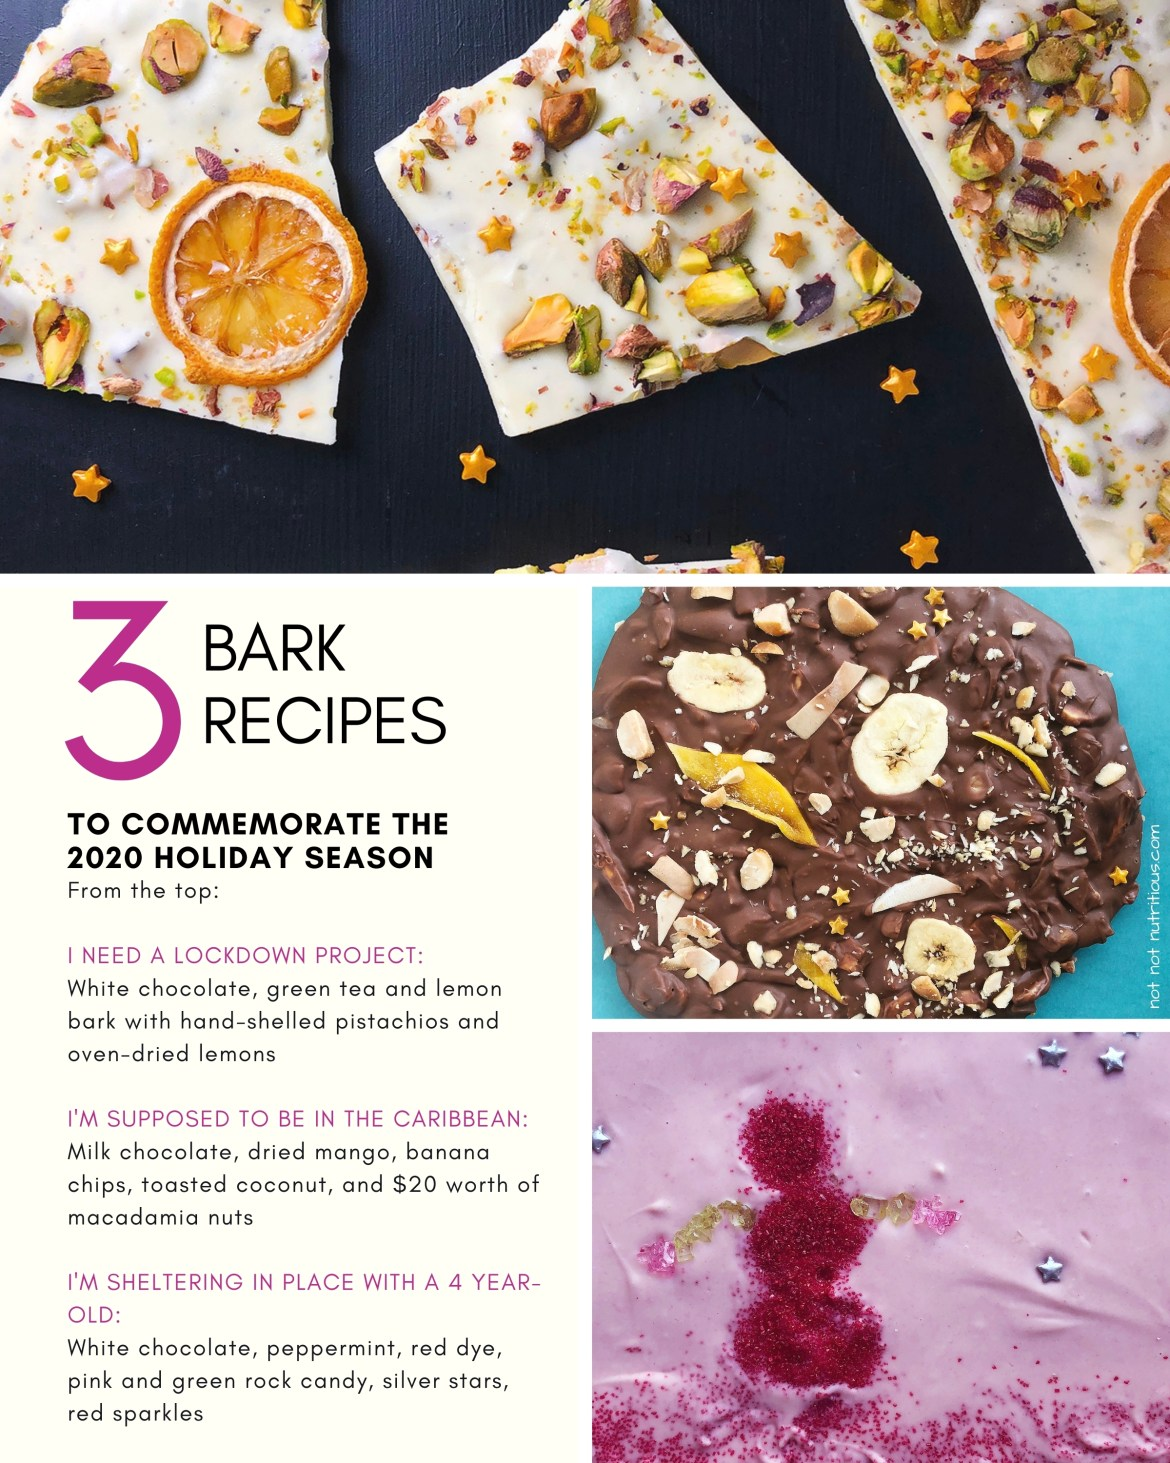 Graphic titled 3 Bark Recipes to commemorate the 2020 Holiday Season. Three images of three types of bark: White chocolate with lemon, green tea, and pistachio; Milk chocolate with mango, coconut, banana chips, and macadamia nuts; and white chocolate with peppermint, and candy sparkles in a snow lady design. Text on graphic reads: I Need a Lockdown Project is a white chocolate bark infused with lemon and green tea and garnished with pistachios and oven-dried lemons.  I'm Supposed to be in the Caribbean is a milk chocolate bark with tropical flavours. I'm Sheltering at Home with a 4-Year Old is a whimsical peppermint flavoured bark, with child-designed decorations.